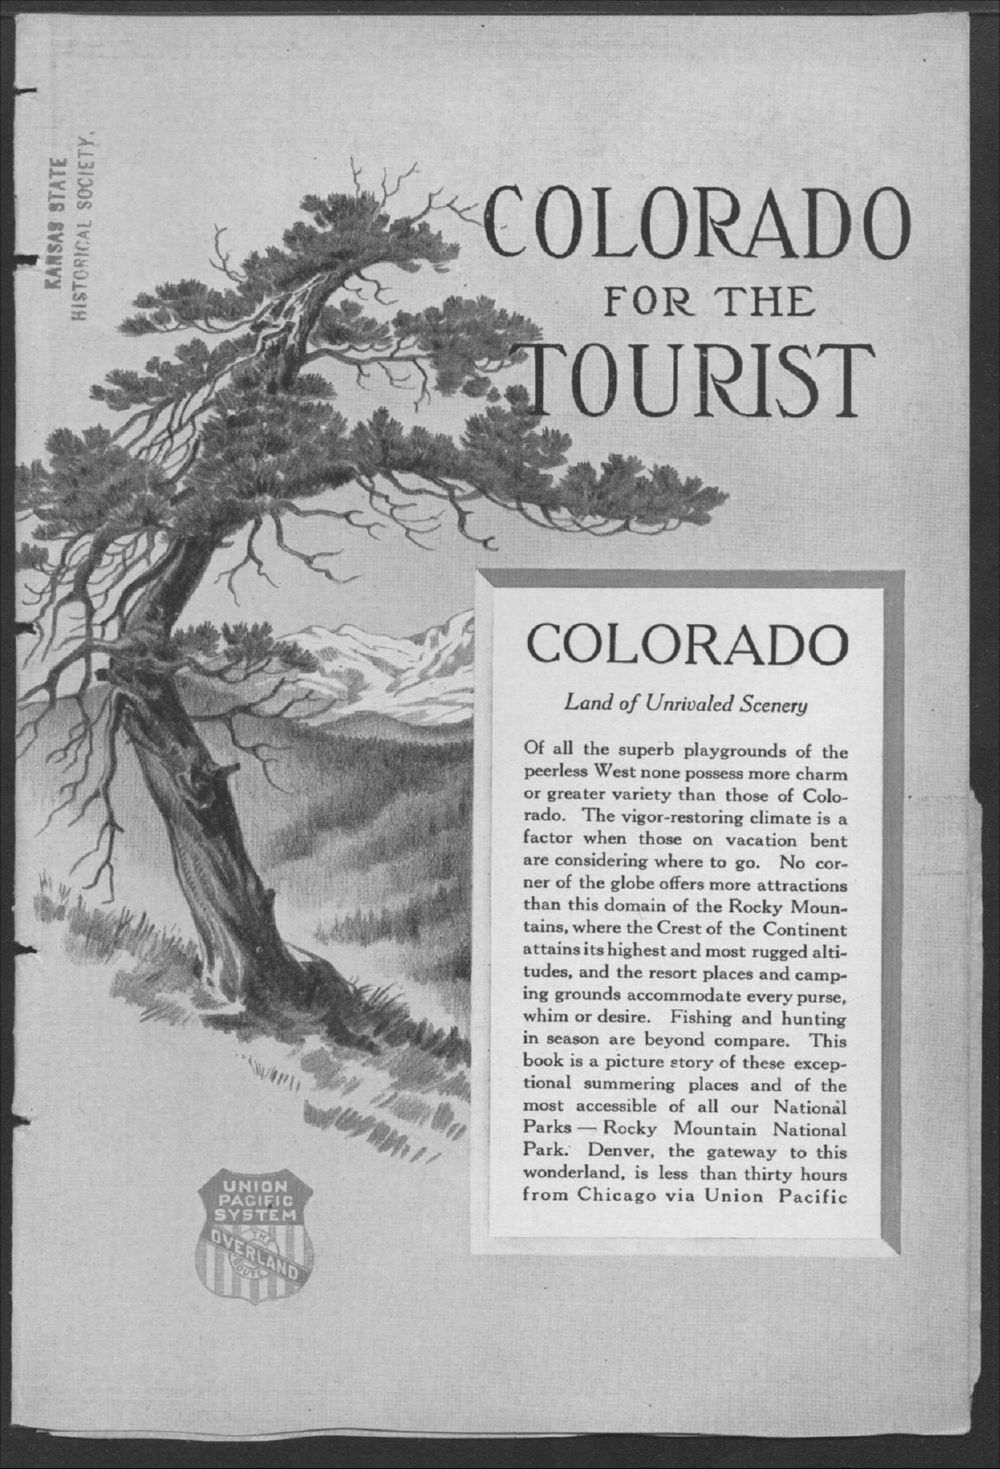 Colorado for the tourist - Title Page